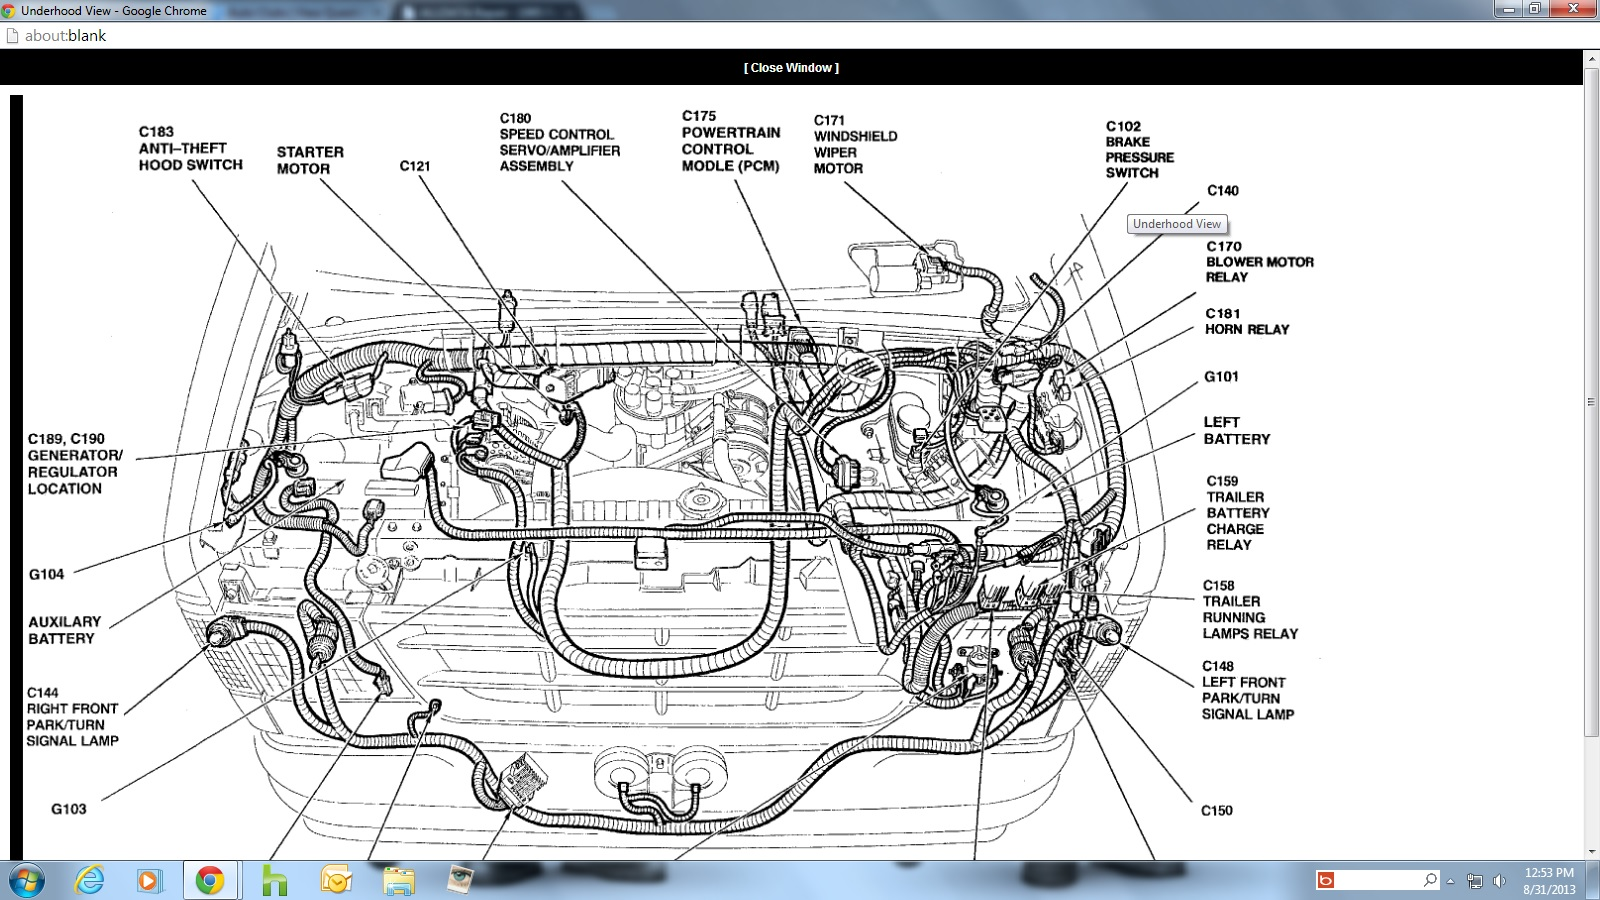 Car Starter Location Diagram E150 Download Wiring Diagrams How To Wire A 53 Ford Solenoid Econoline Van Get Free Image About Relay Typical